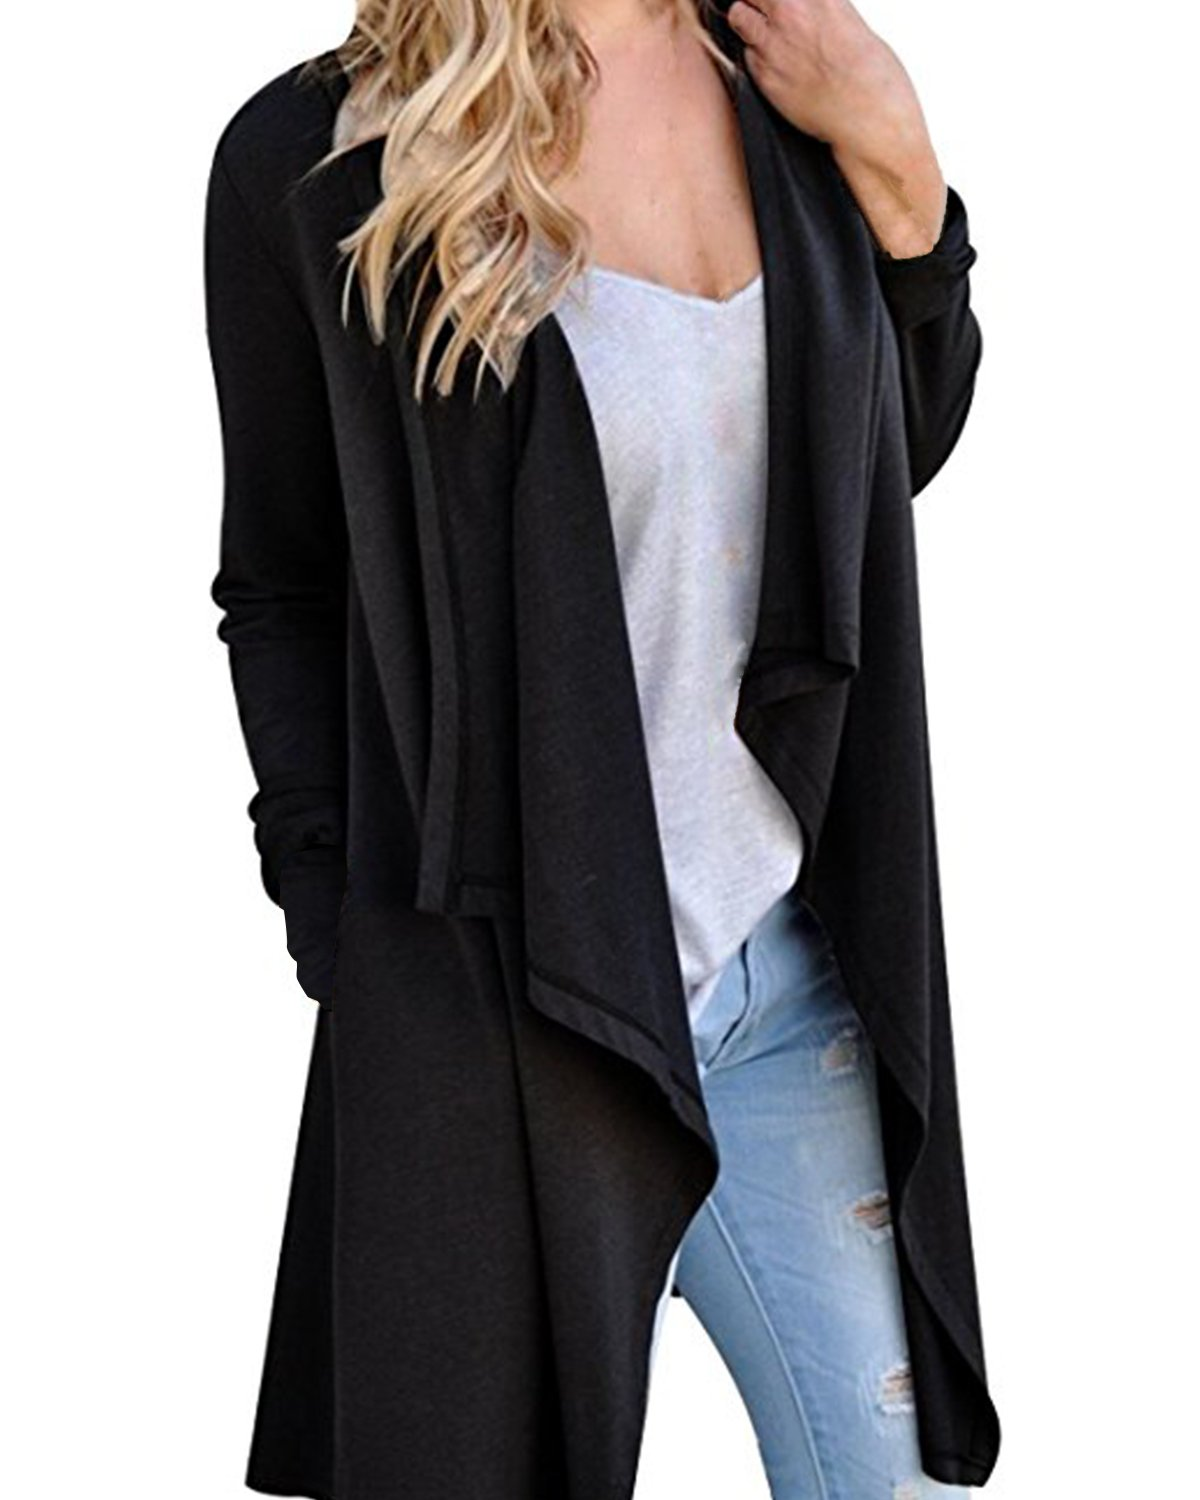 StyleDome Women's Cardigans Long Sleeve Knitted Open Front Trench Coat Outwear Black S